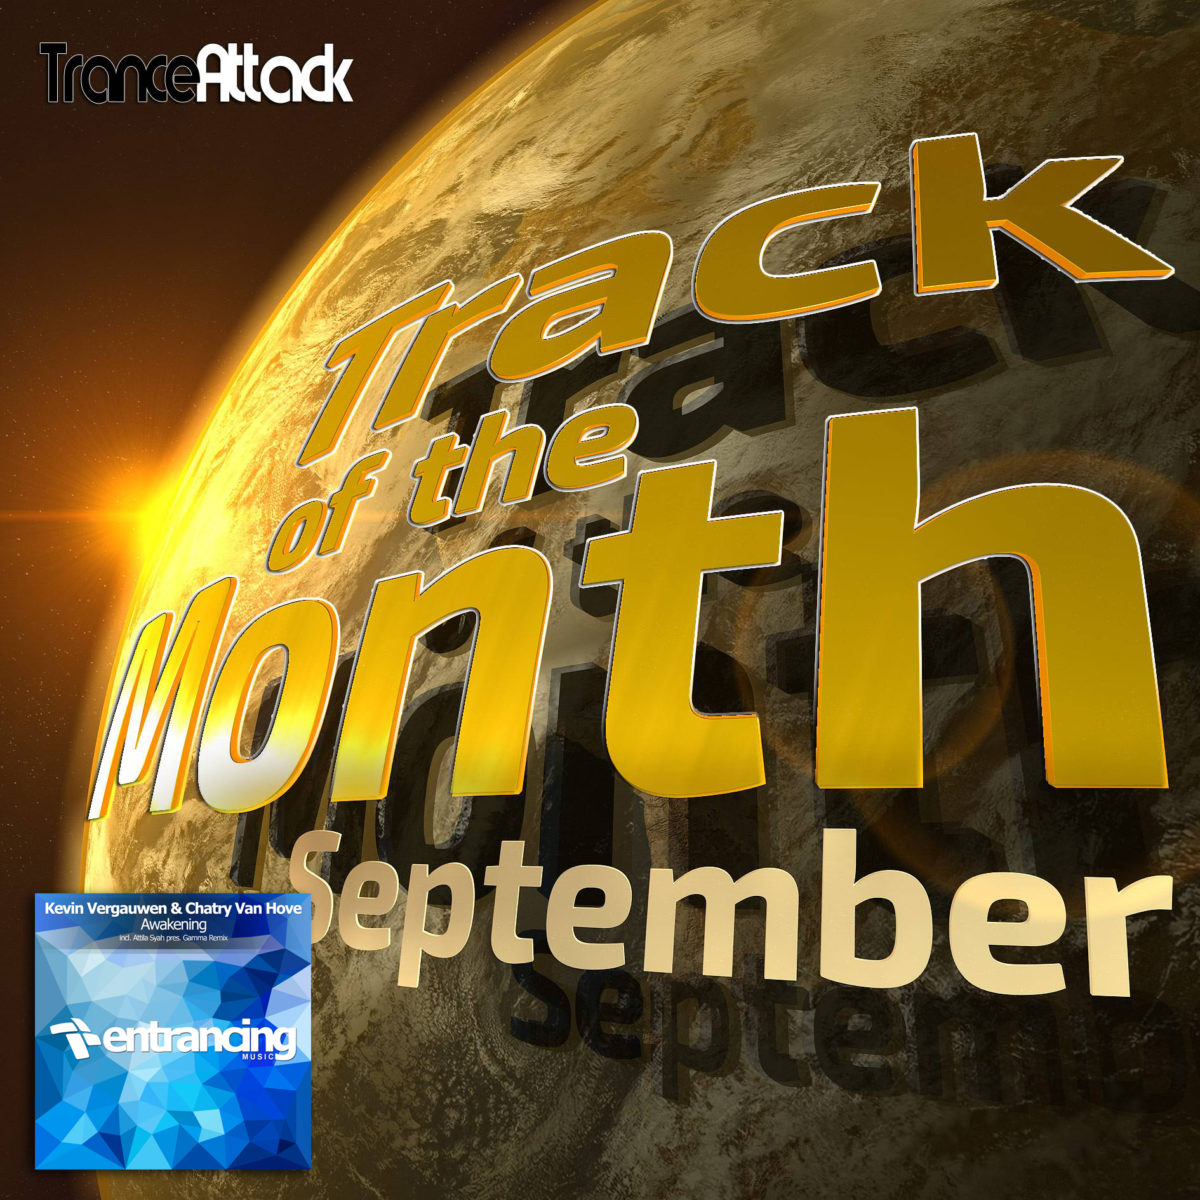 Track Of The Month September 2017: Kevin Vergauwen & Chatry Van Hove - Awakening